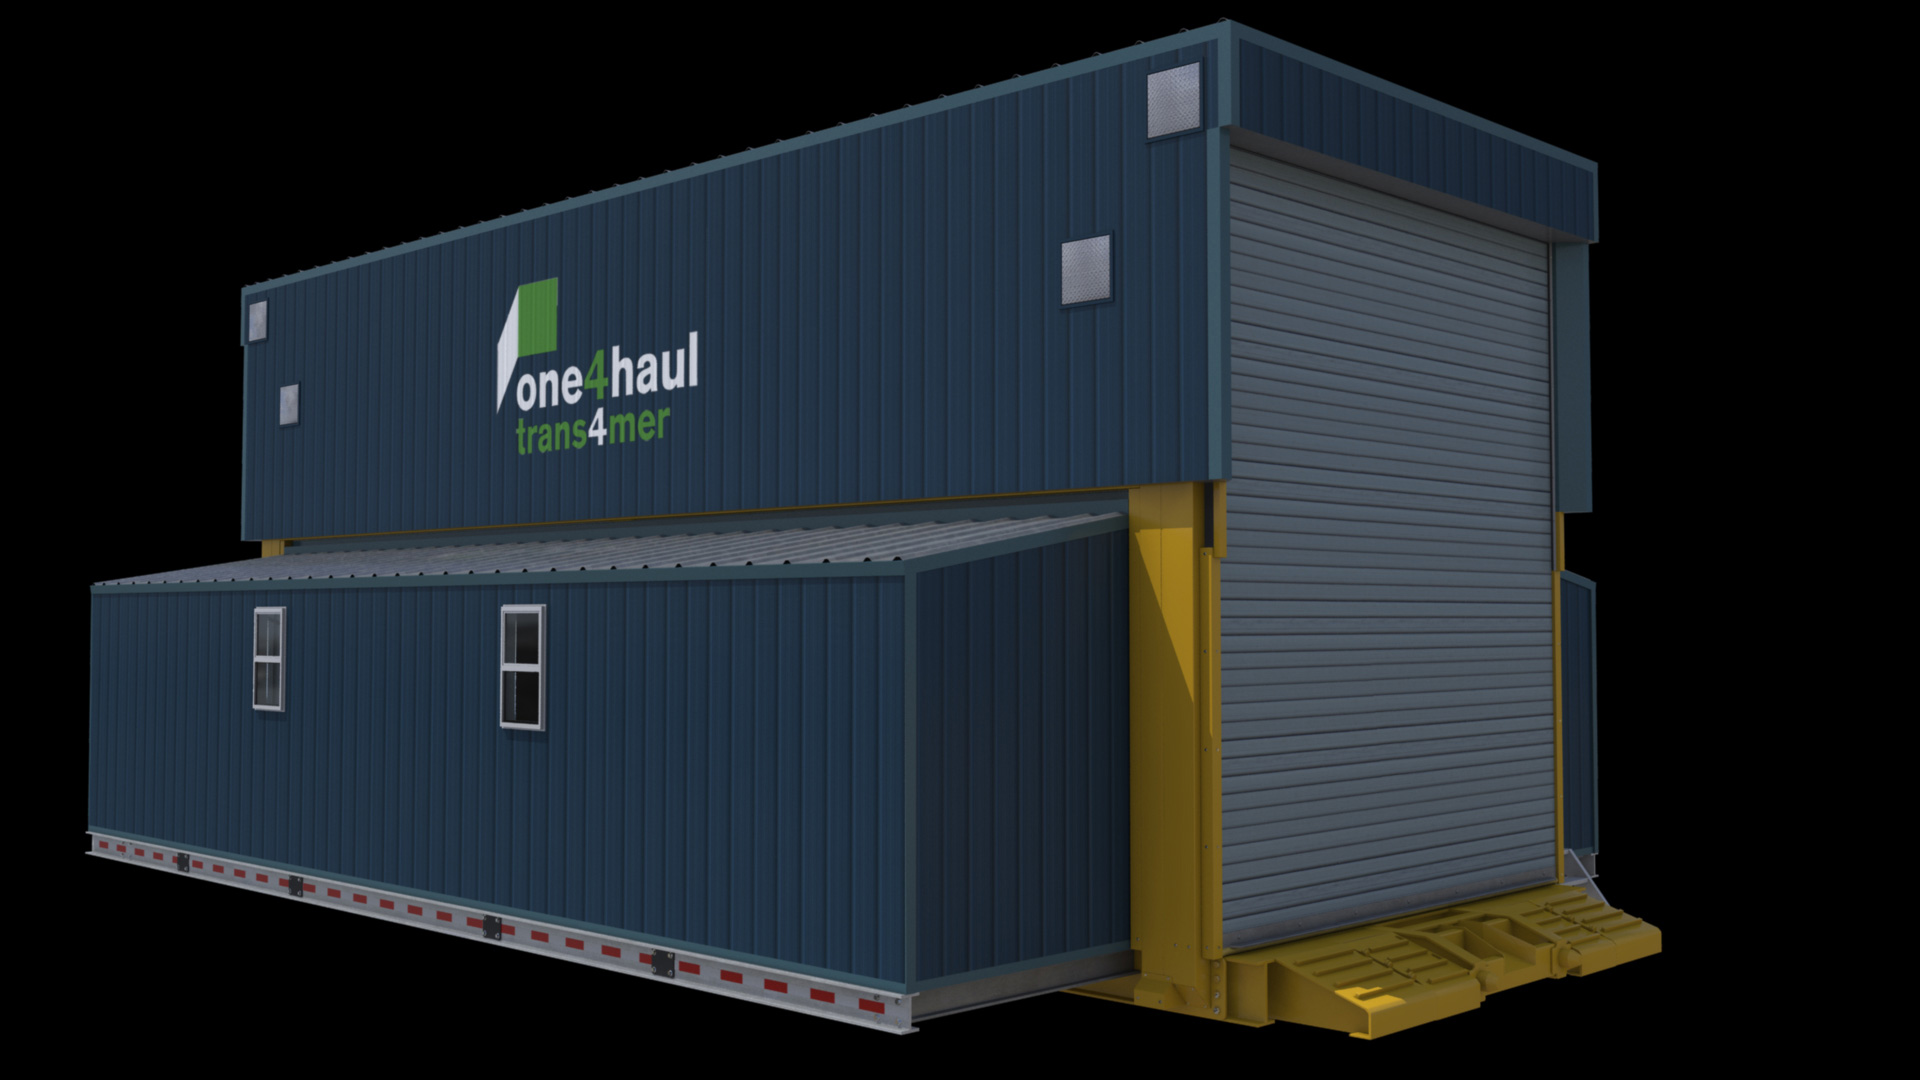 extreme portable buildings trans4mer main structure exterior left side thumbnail